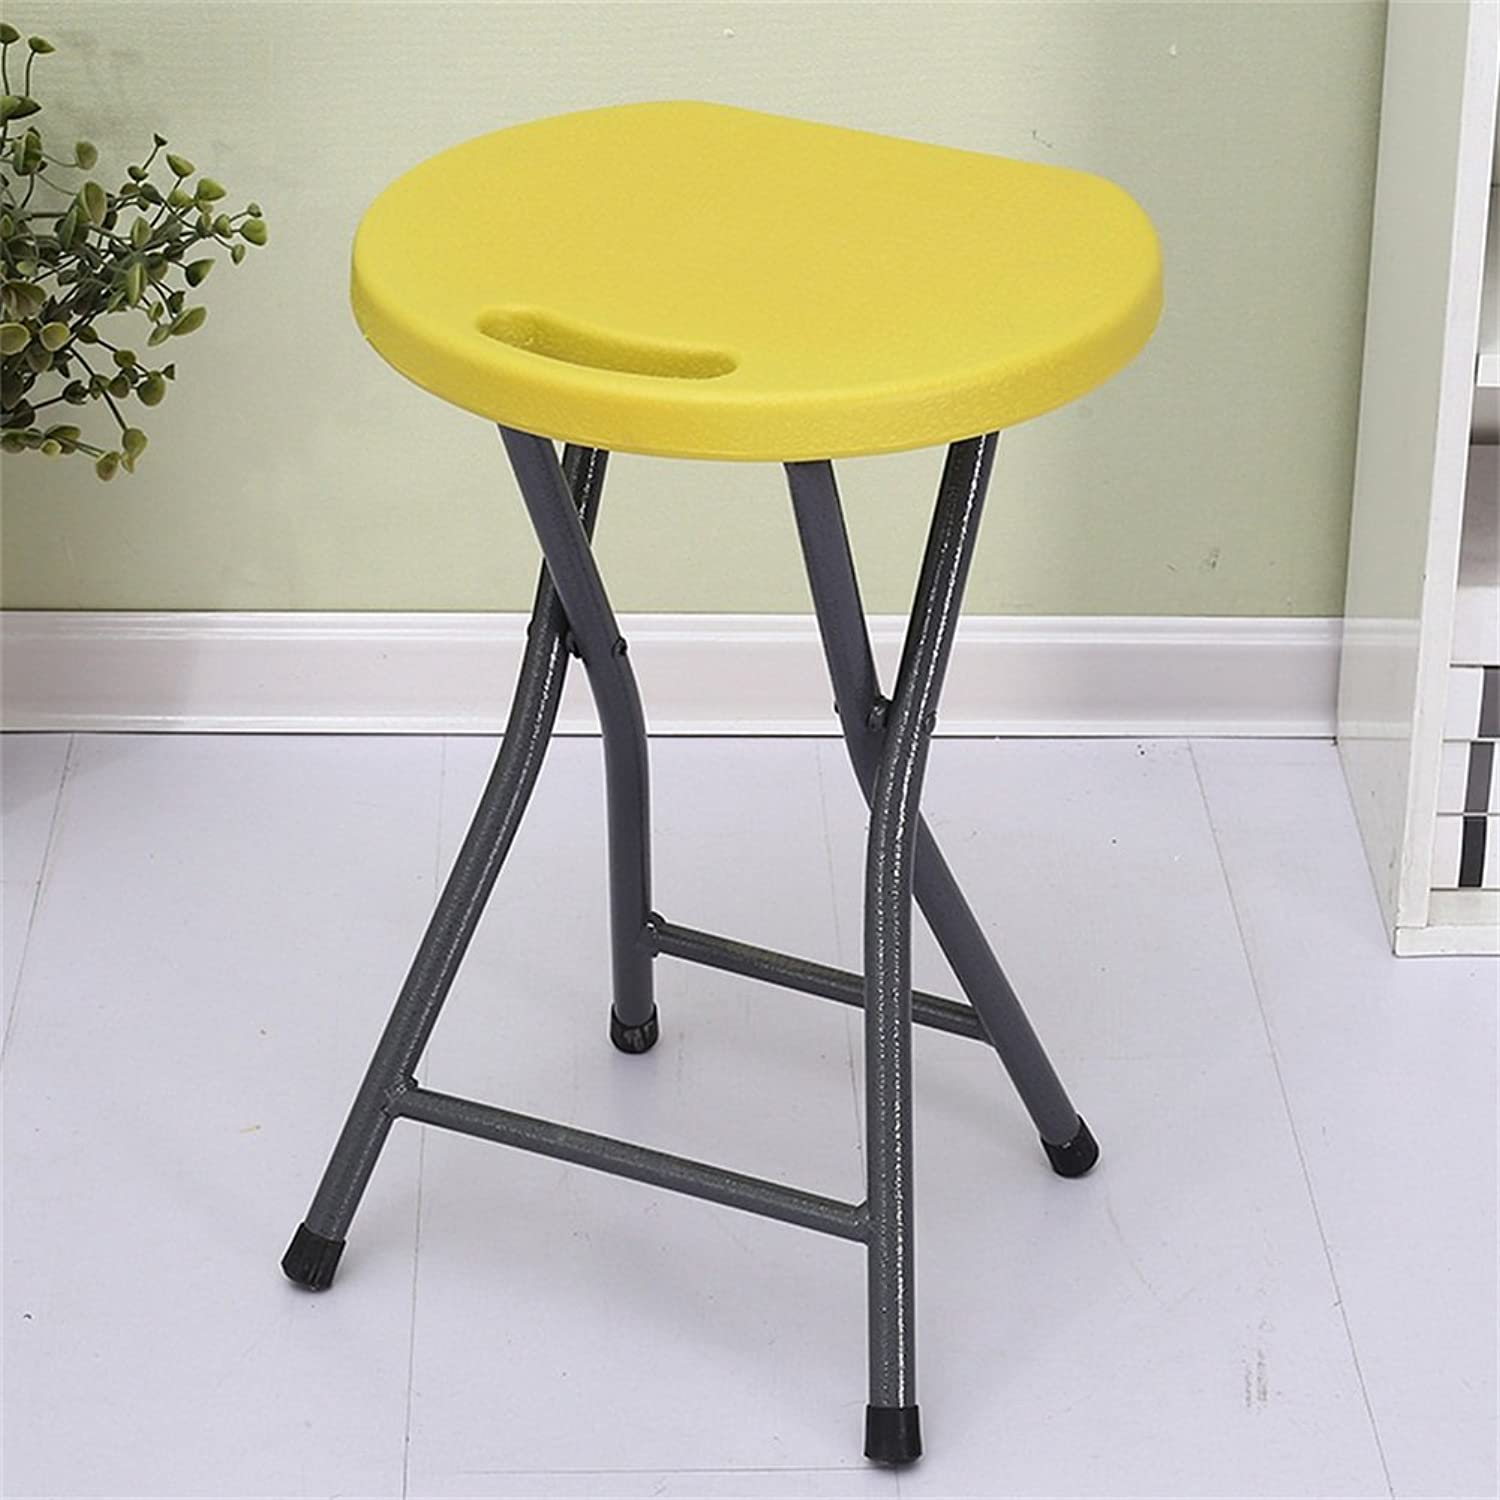 PVC Material Folding Stool 150 Kg Negative Weight Comfortable Portable Yellow 45  33  33cm